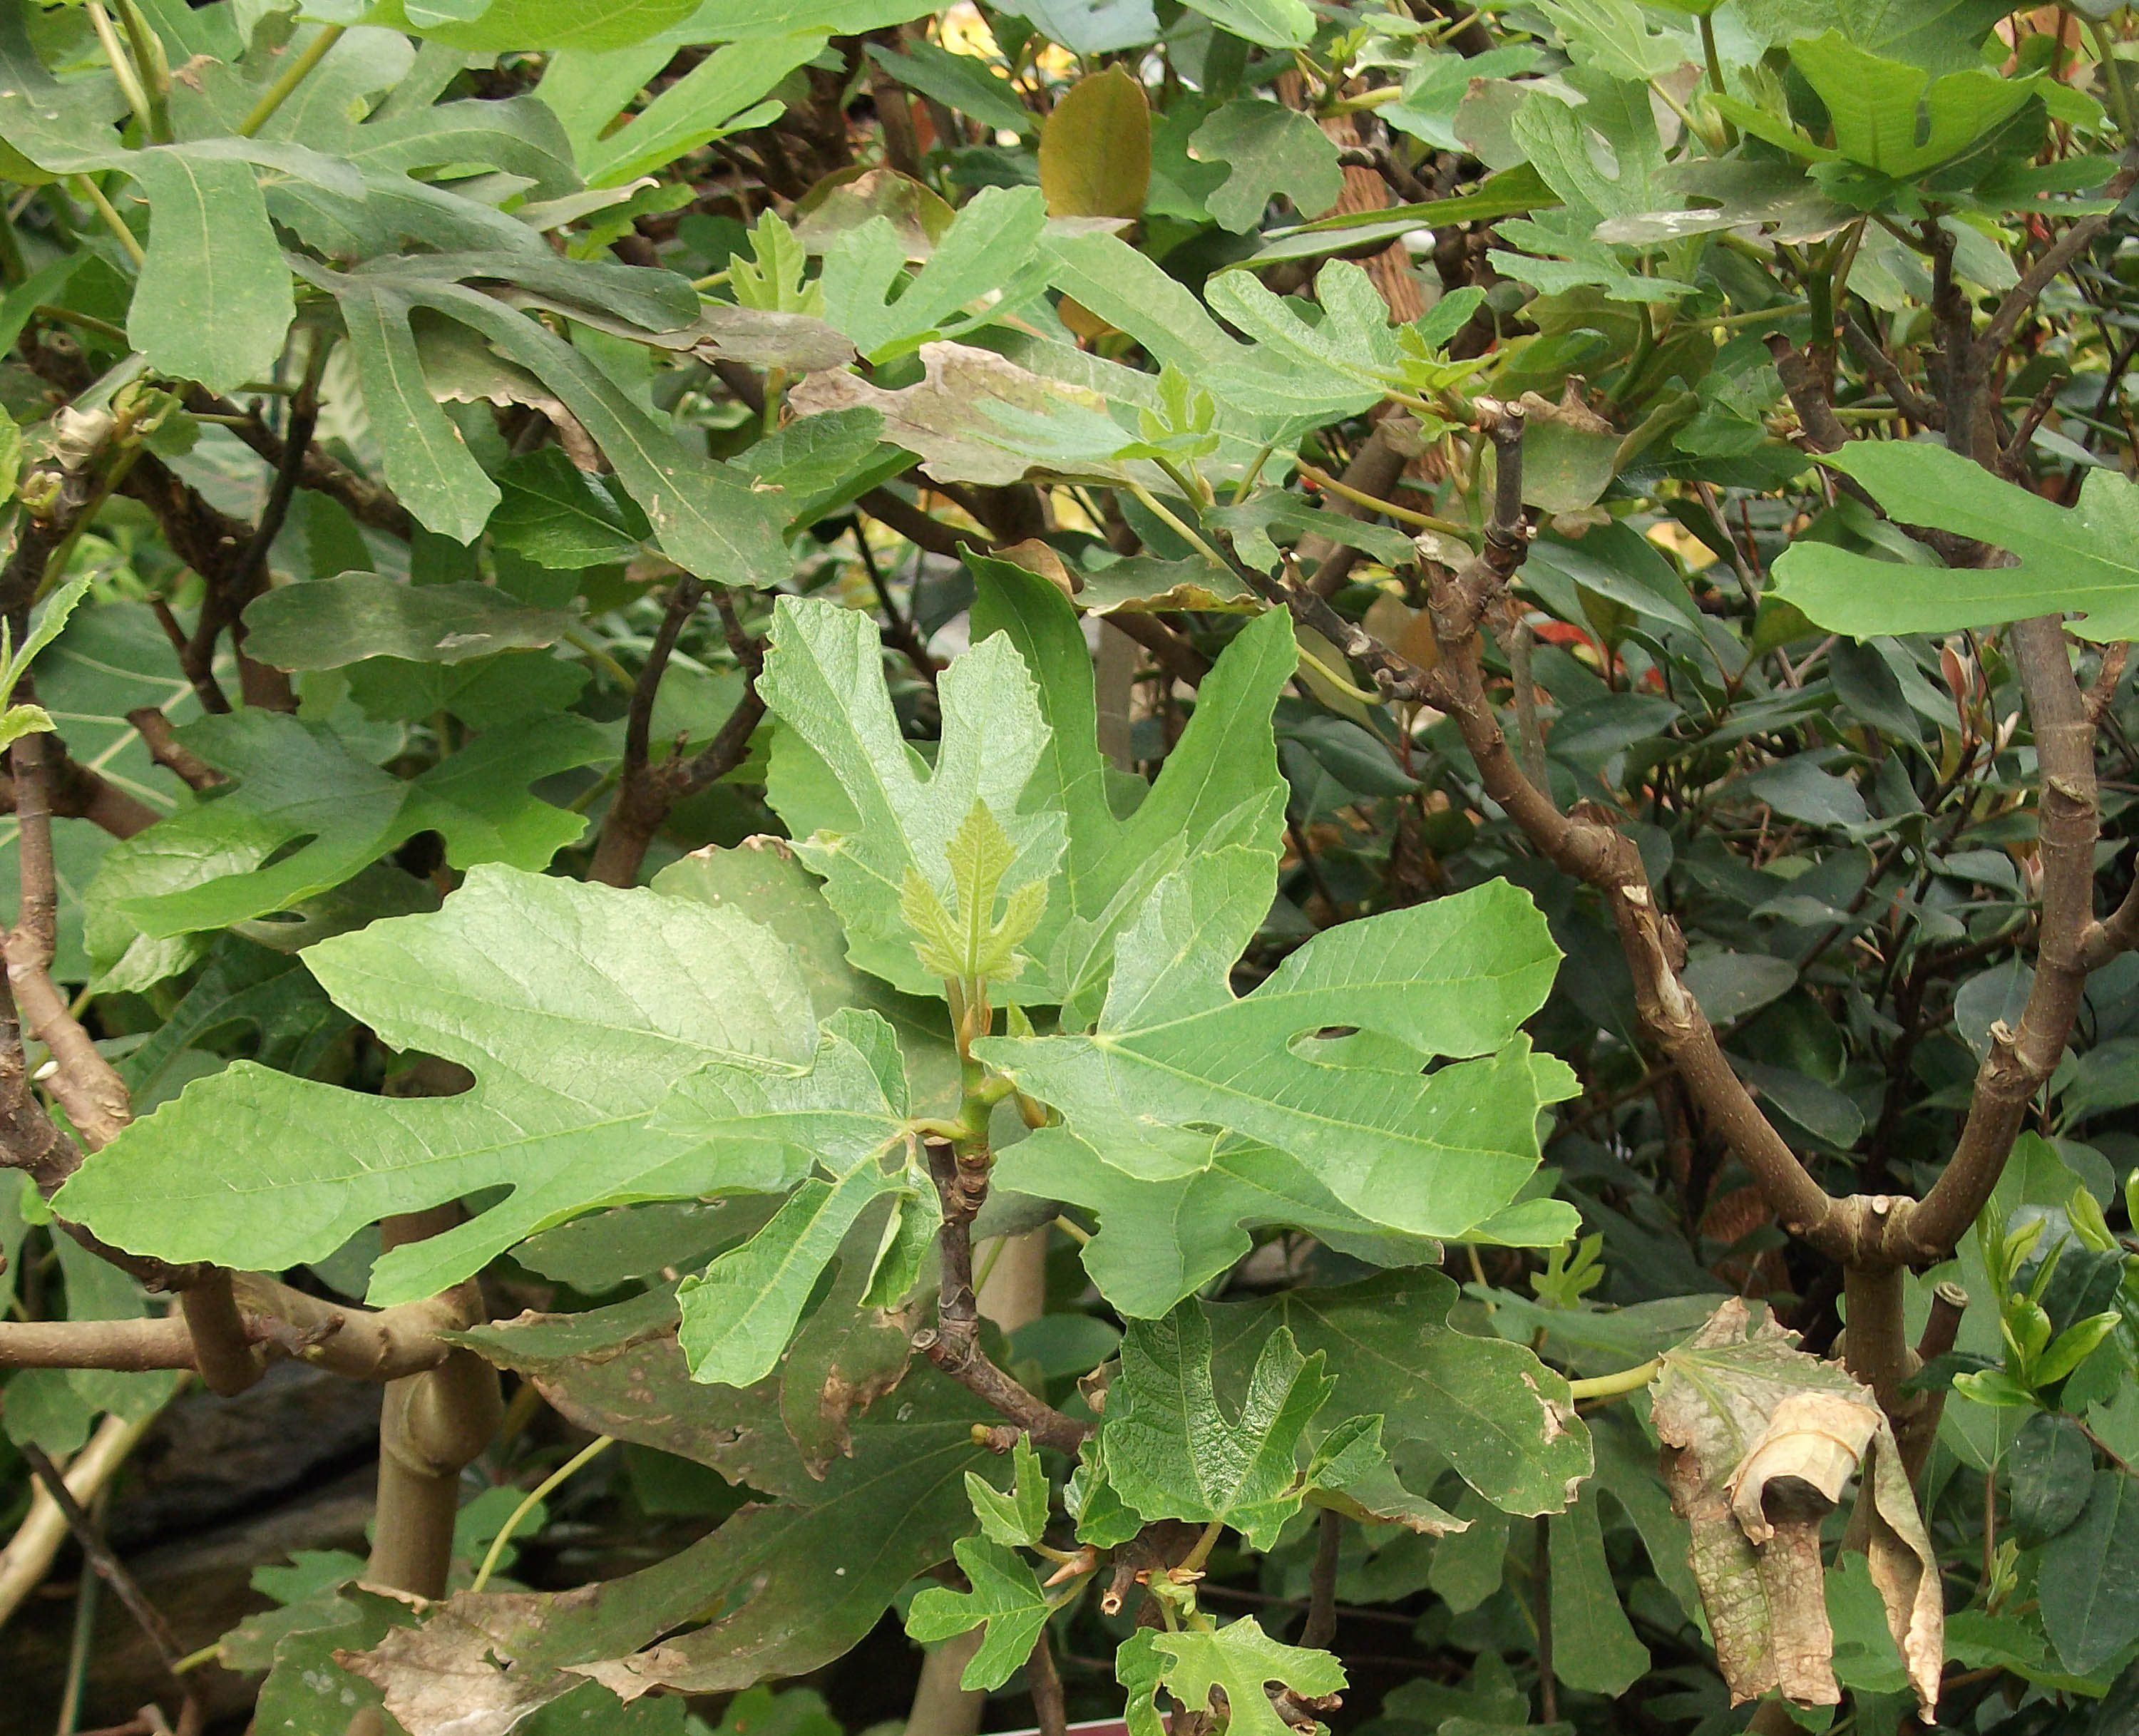 Leaves of a fig plant in the greenhouse